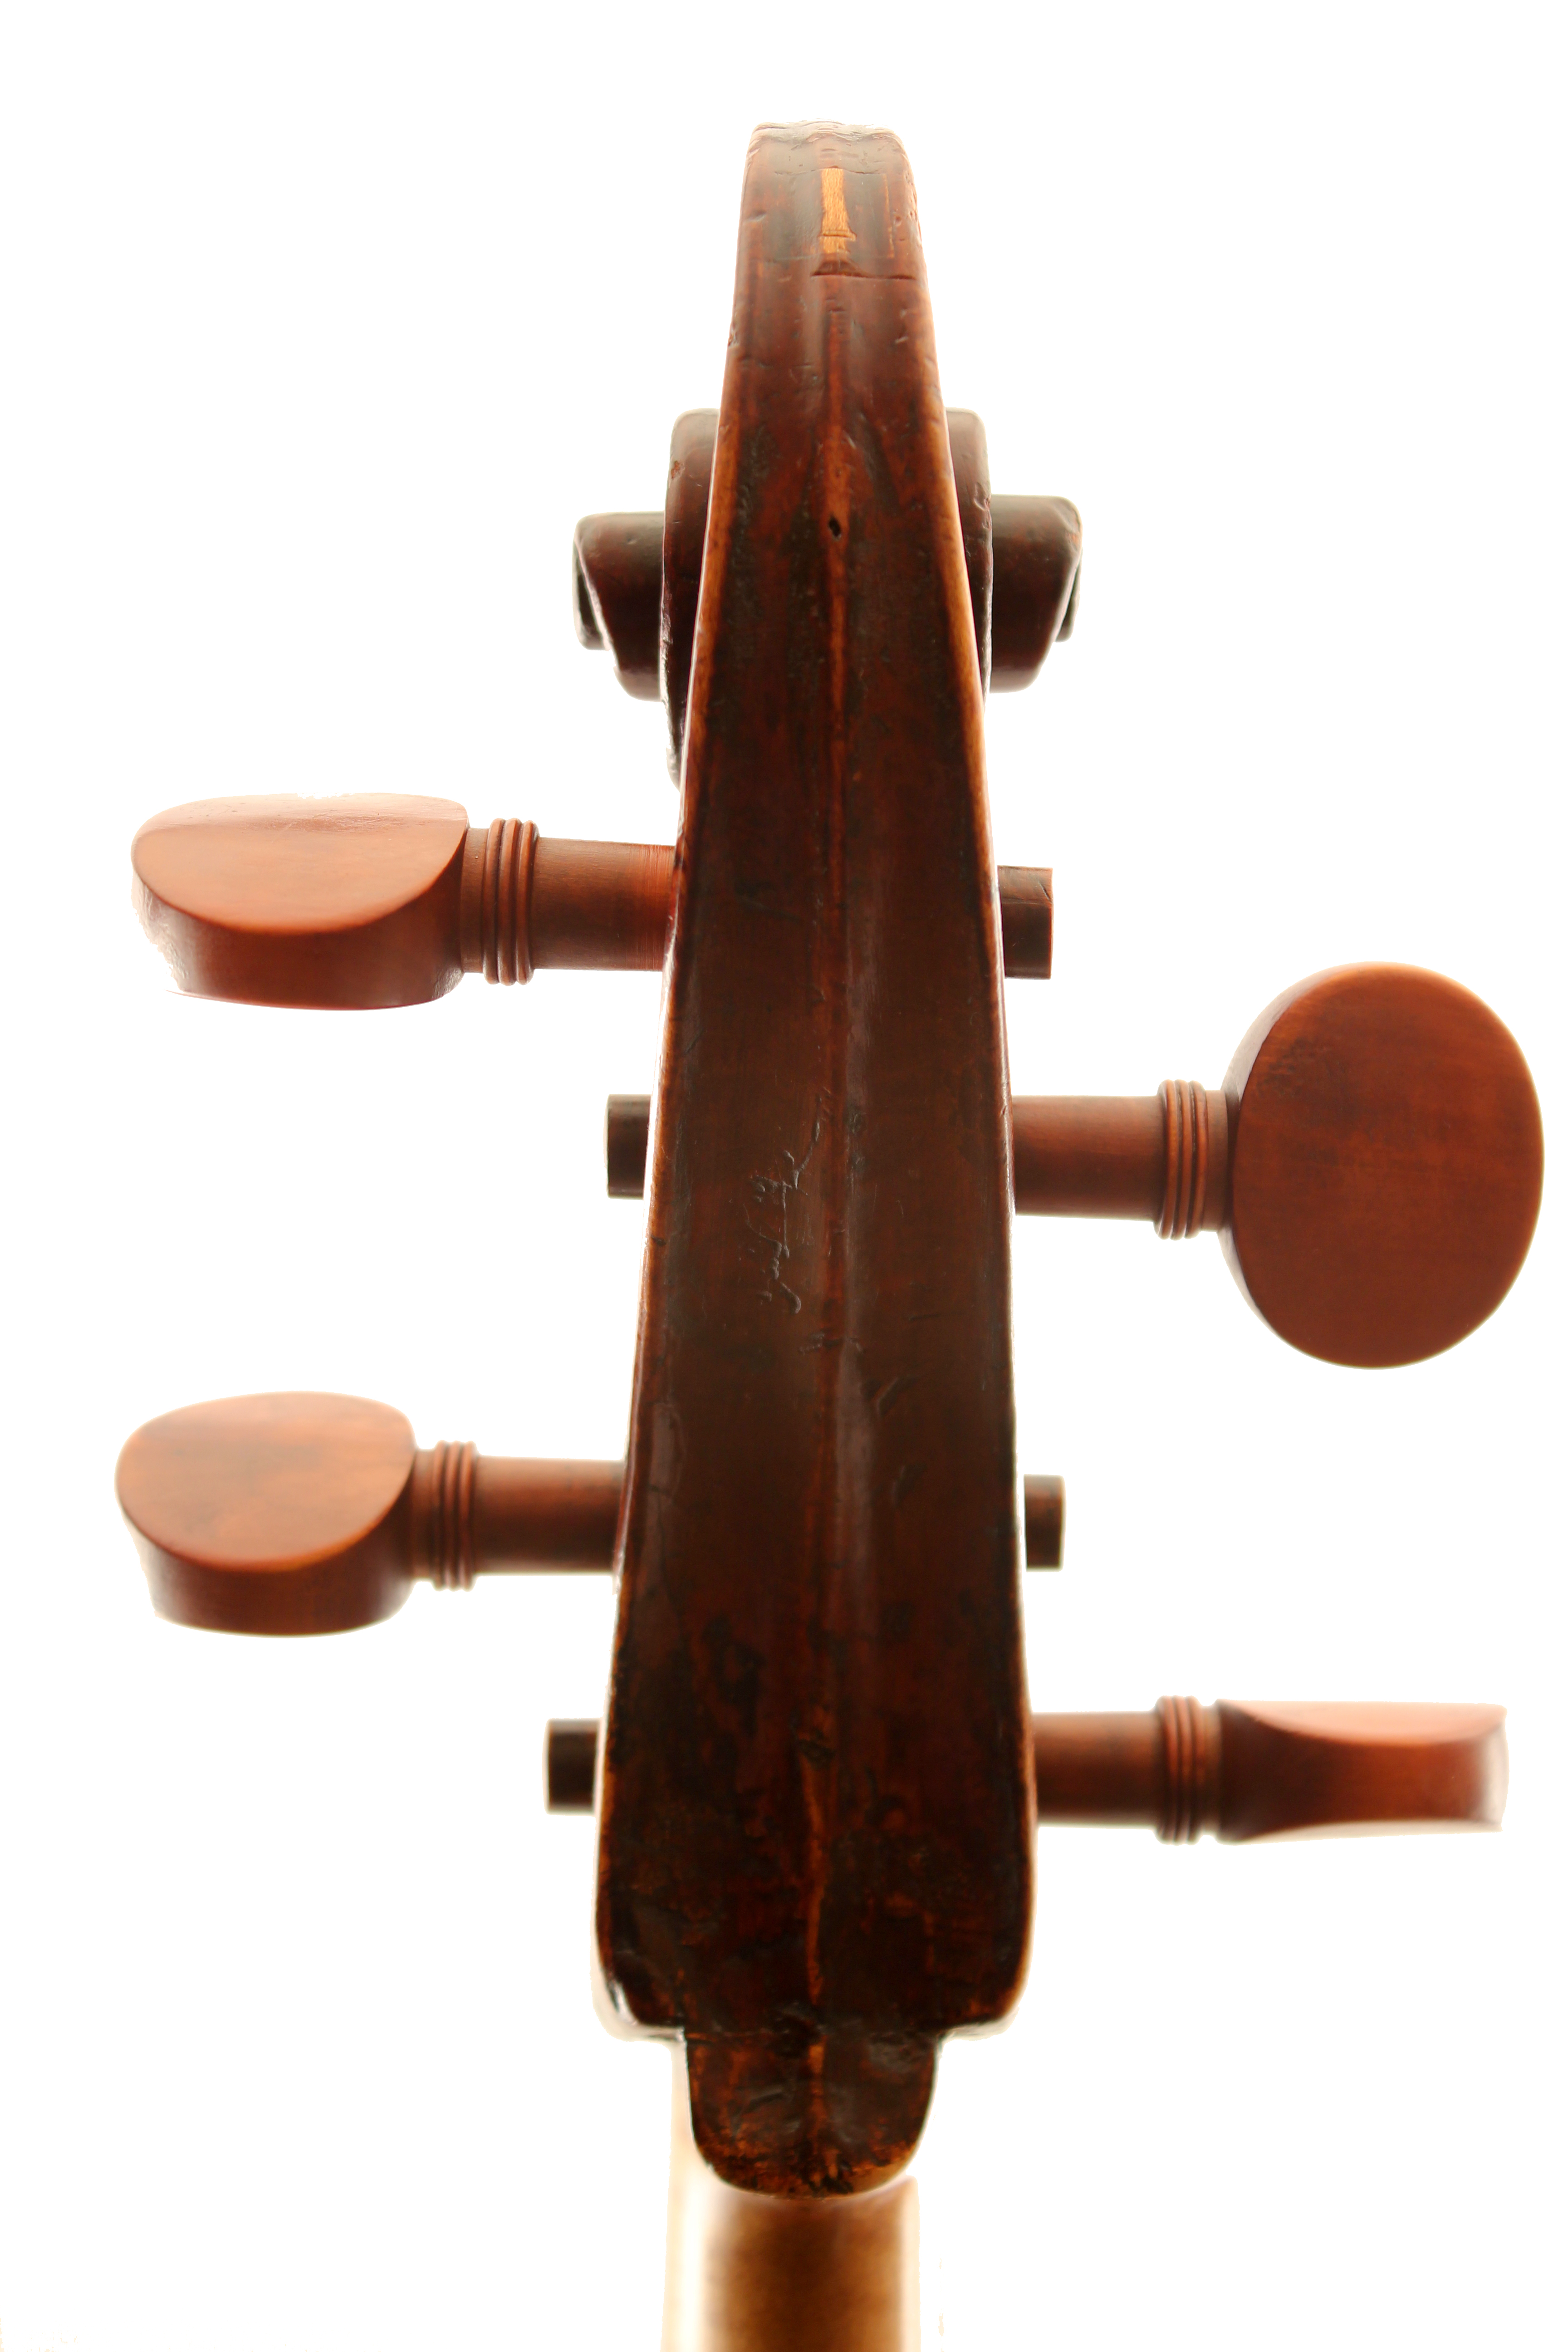 Bohemian baroque cello for sale at Bridgewood and Neitzert London